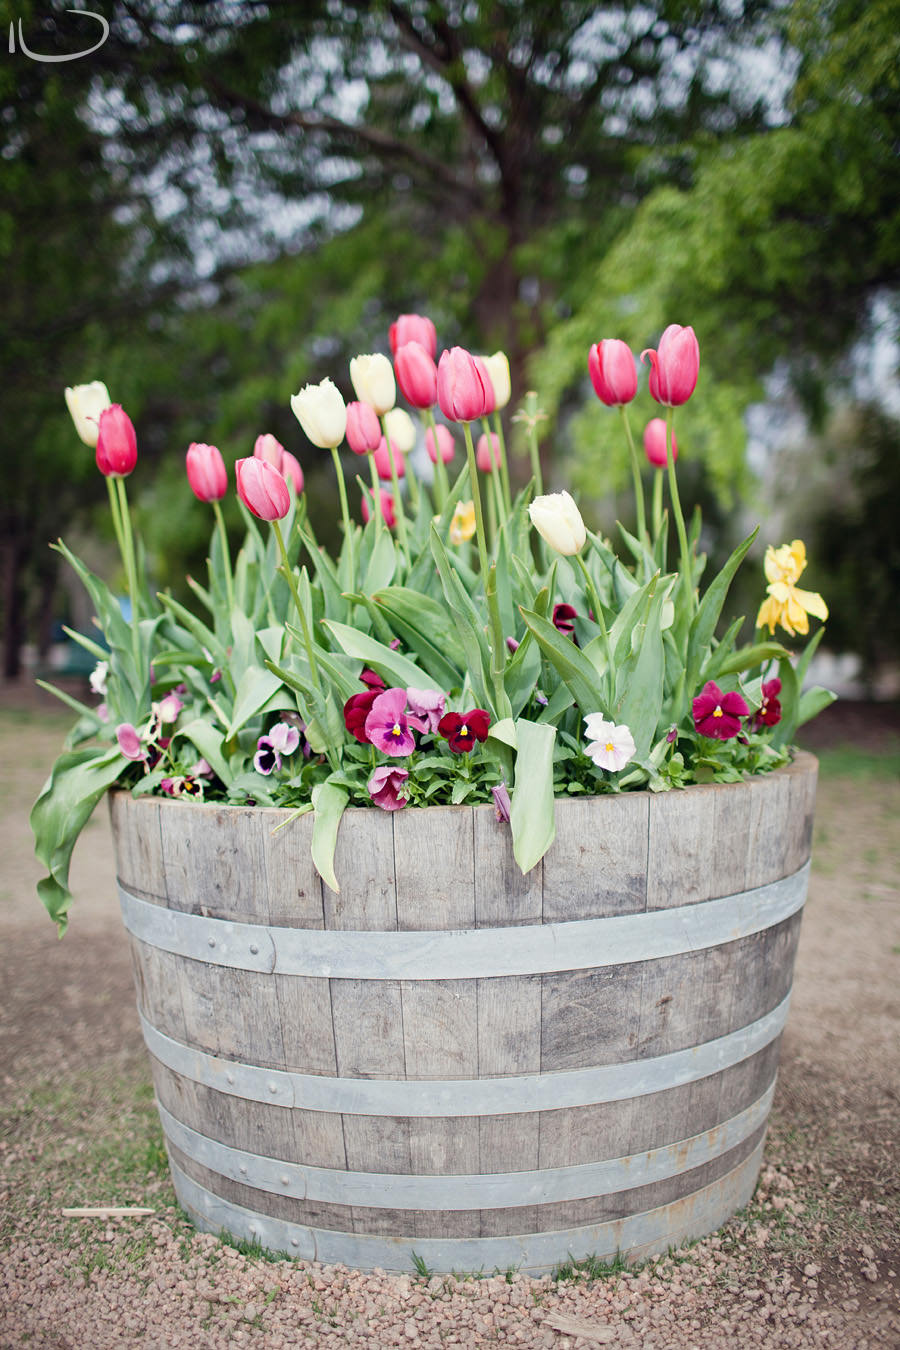 Canberra Floriade Photographer | Tulips in Barrell